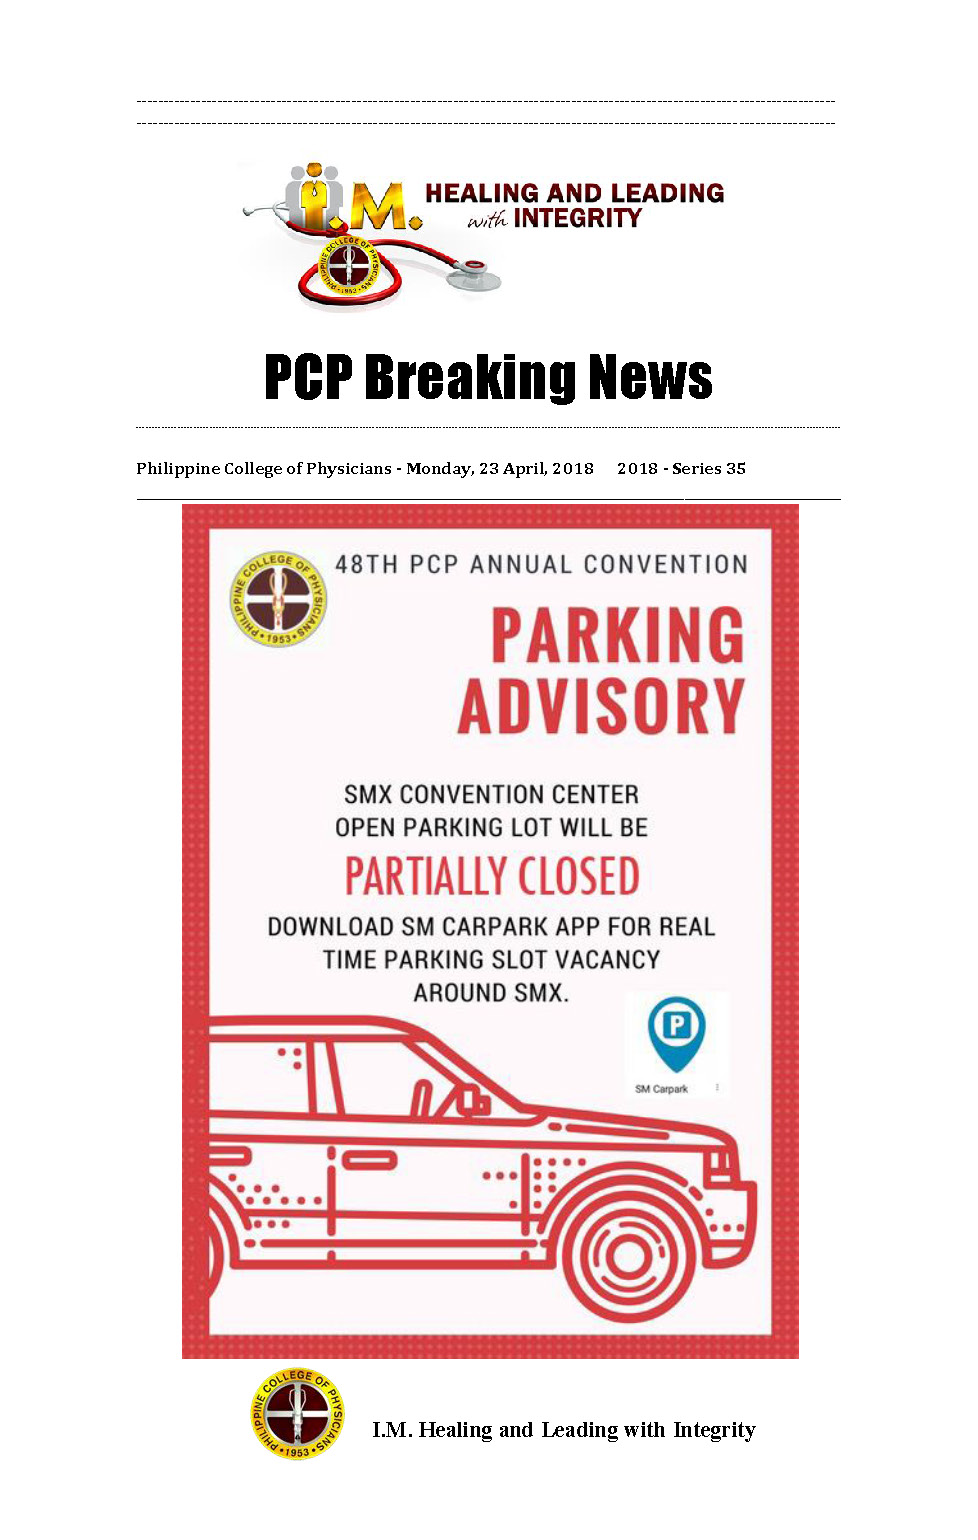 PCP Breaking News 35th